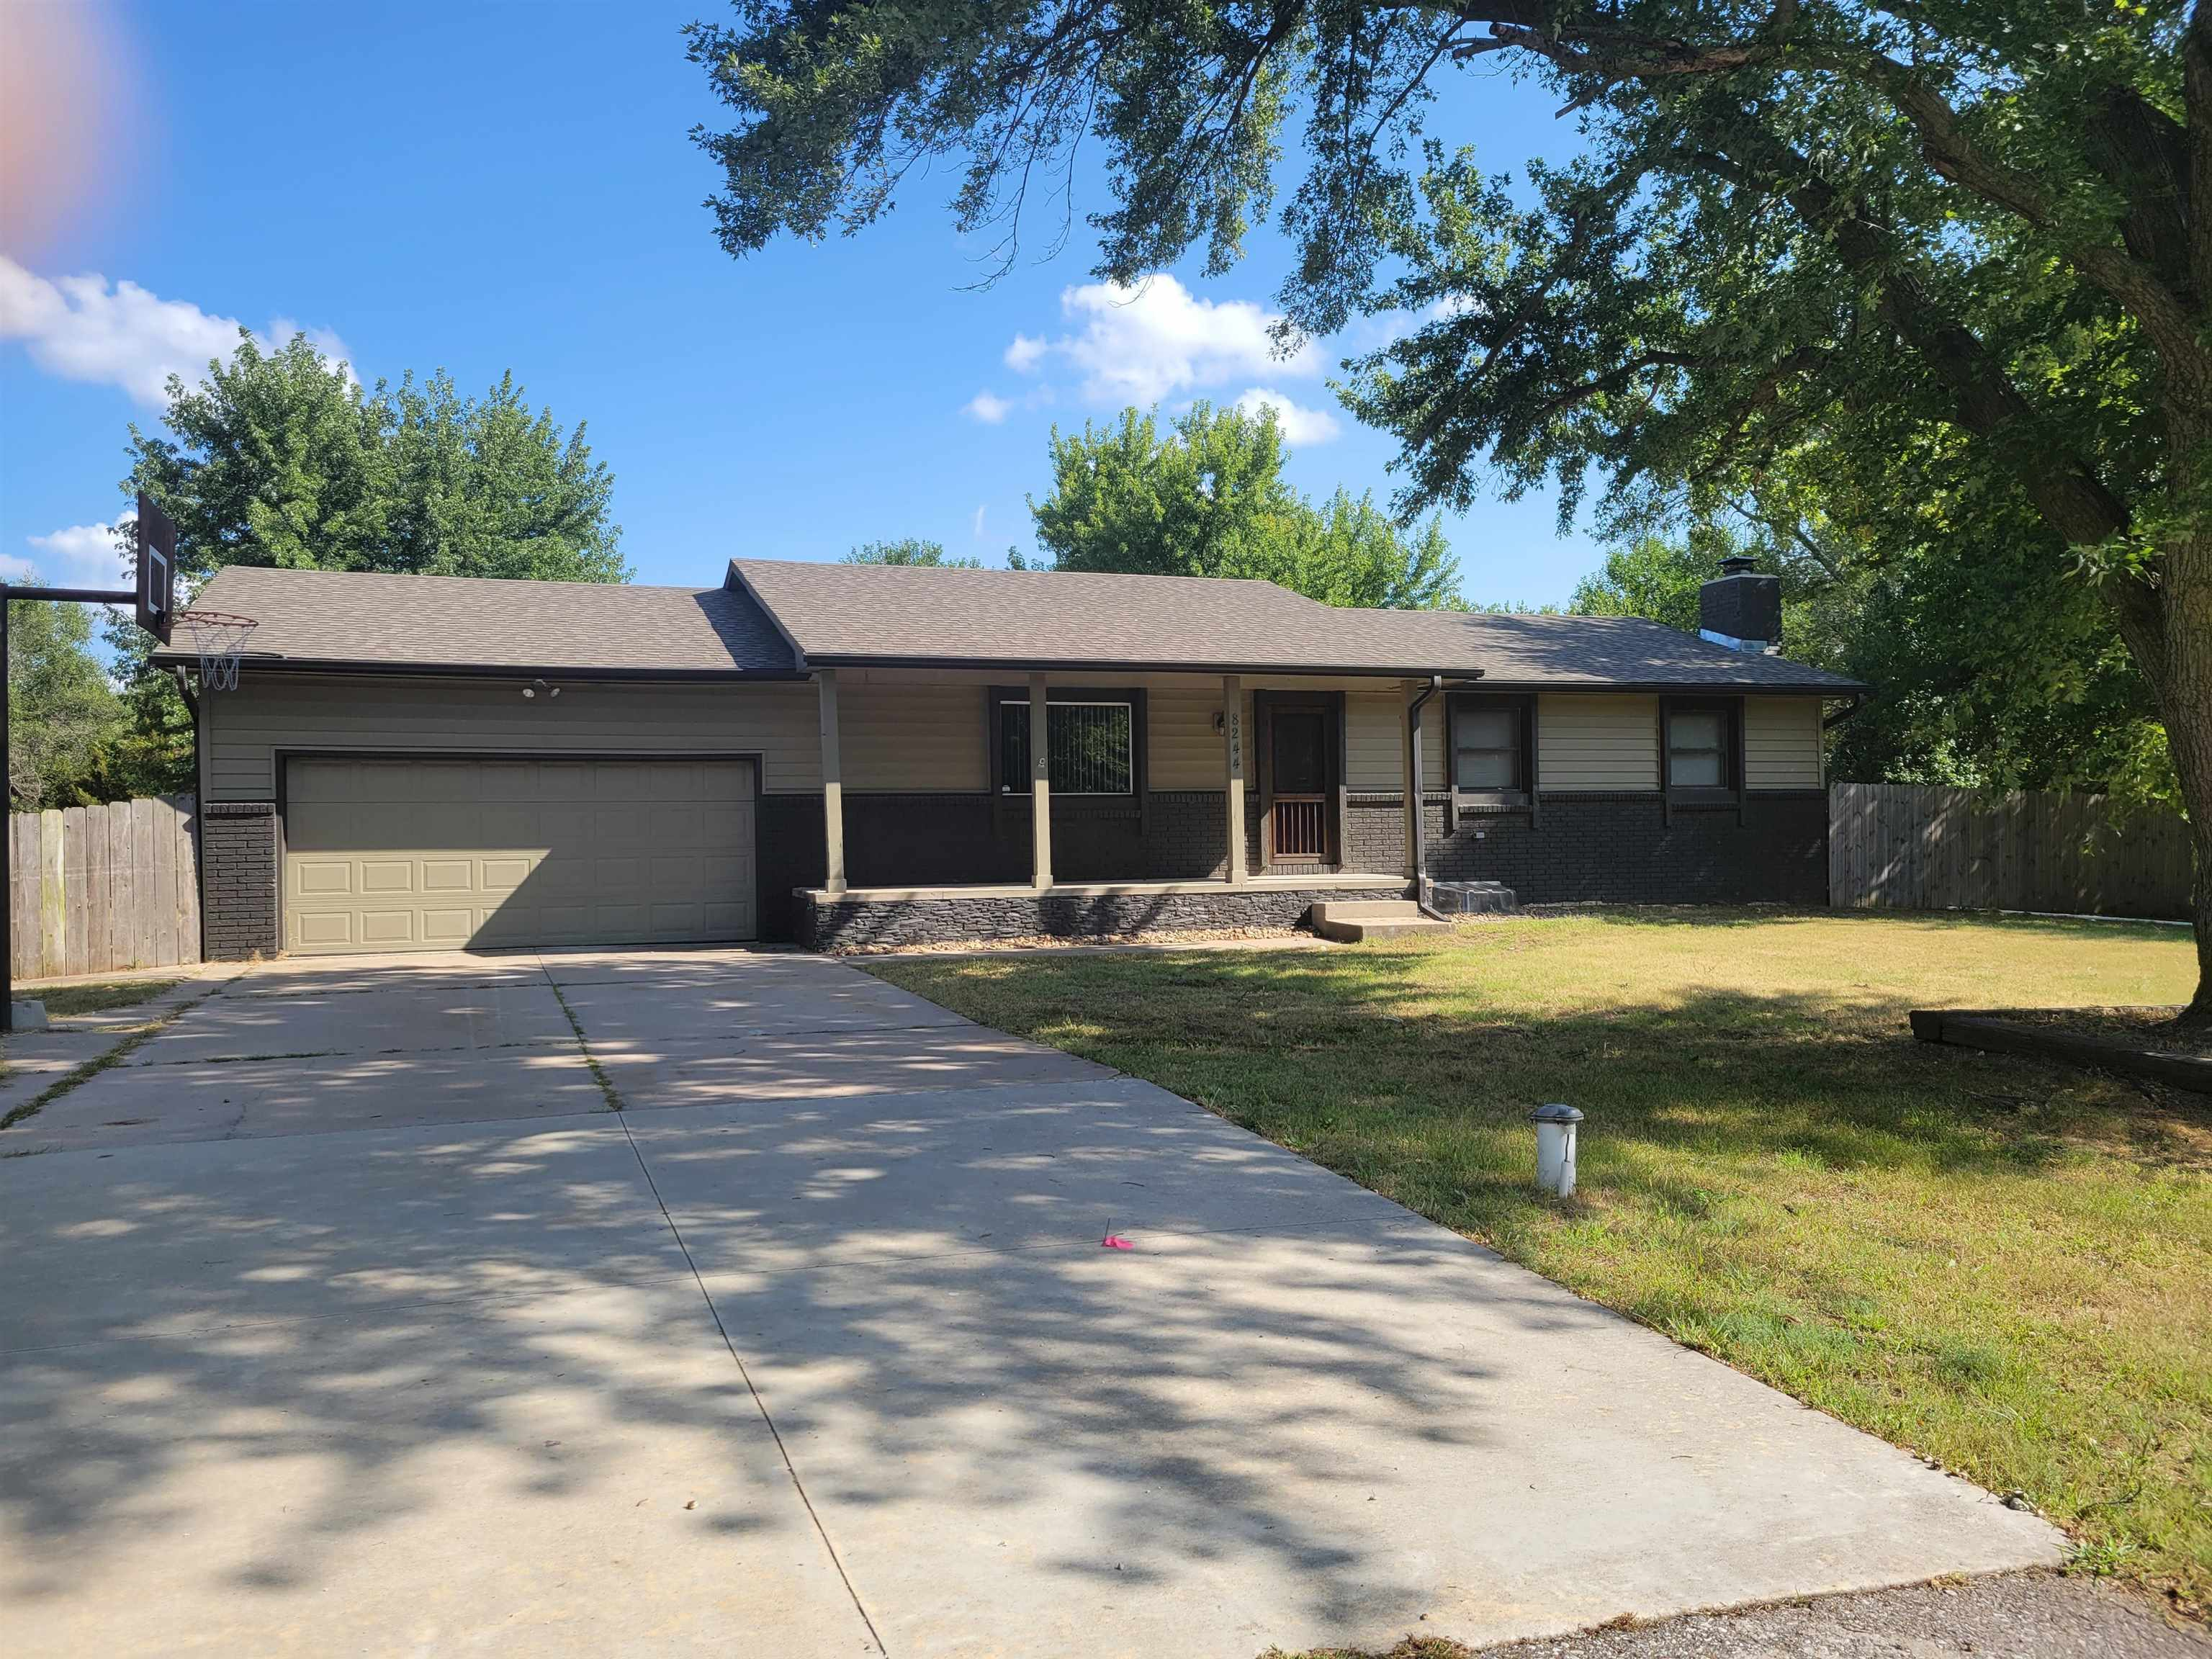 Country living and just a few miles from town!! Spacious 4BR 3BA ranch with 2,800 sq ft of living sp